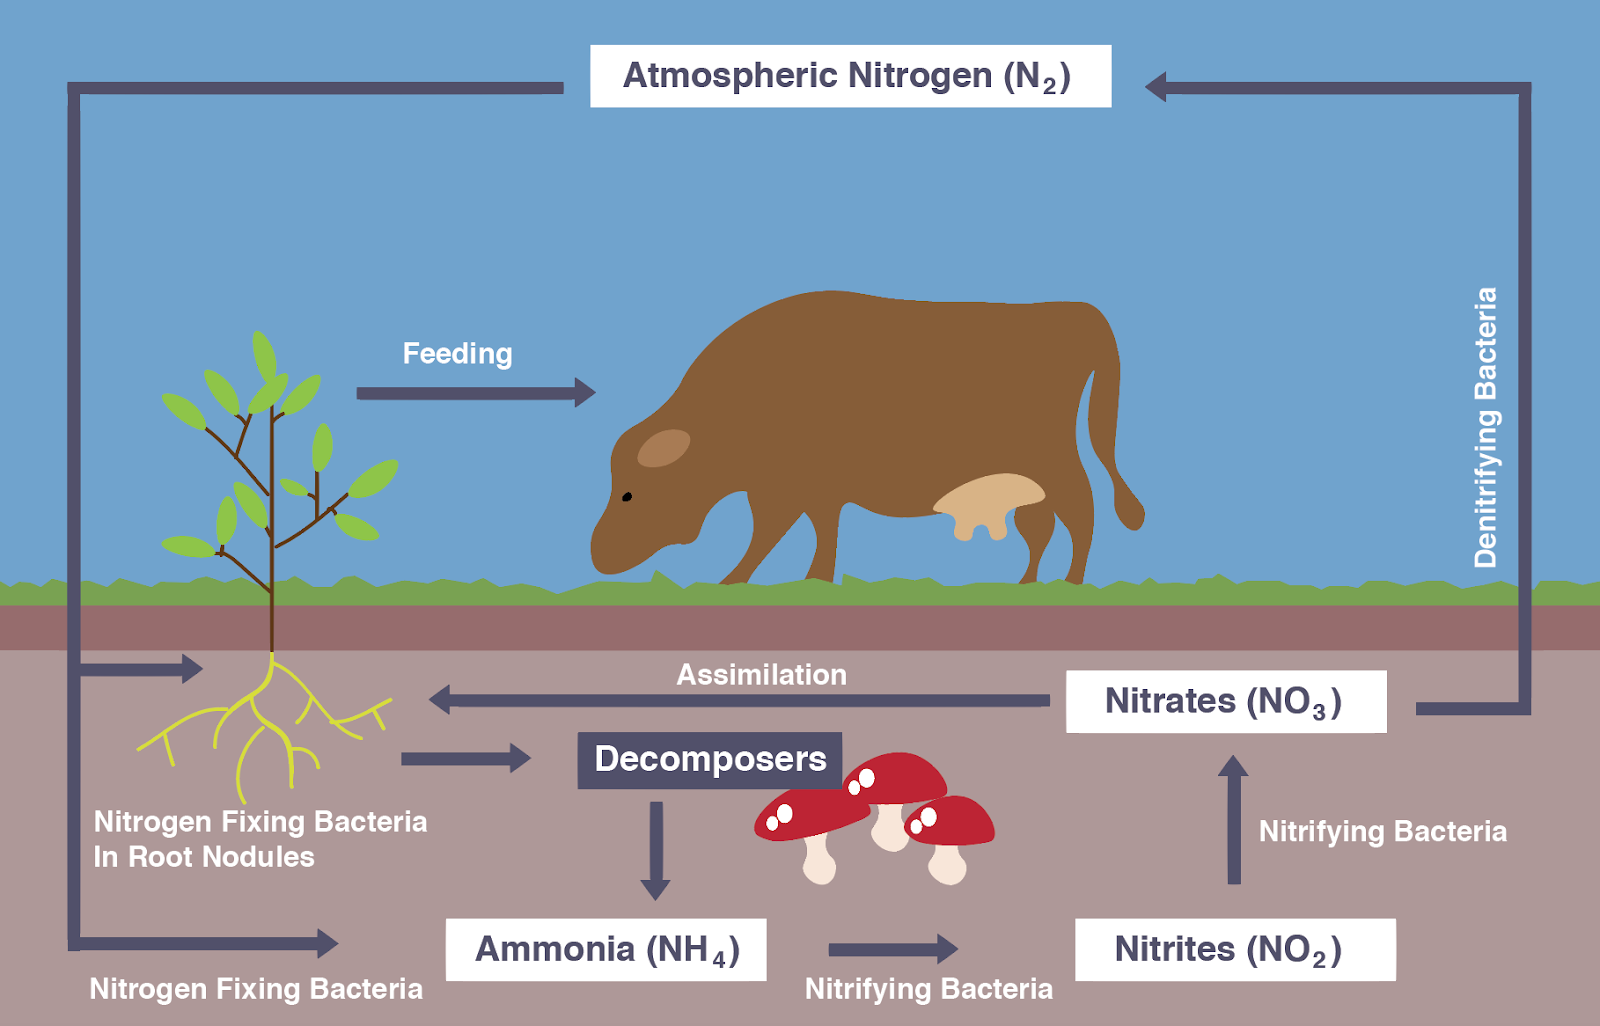 igcse biology notes 4 10 describe the stages in the nitrogen cycle Nitrogen Fixing Bacteria diagram showing the nitrogen cycle